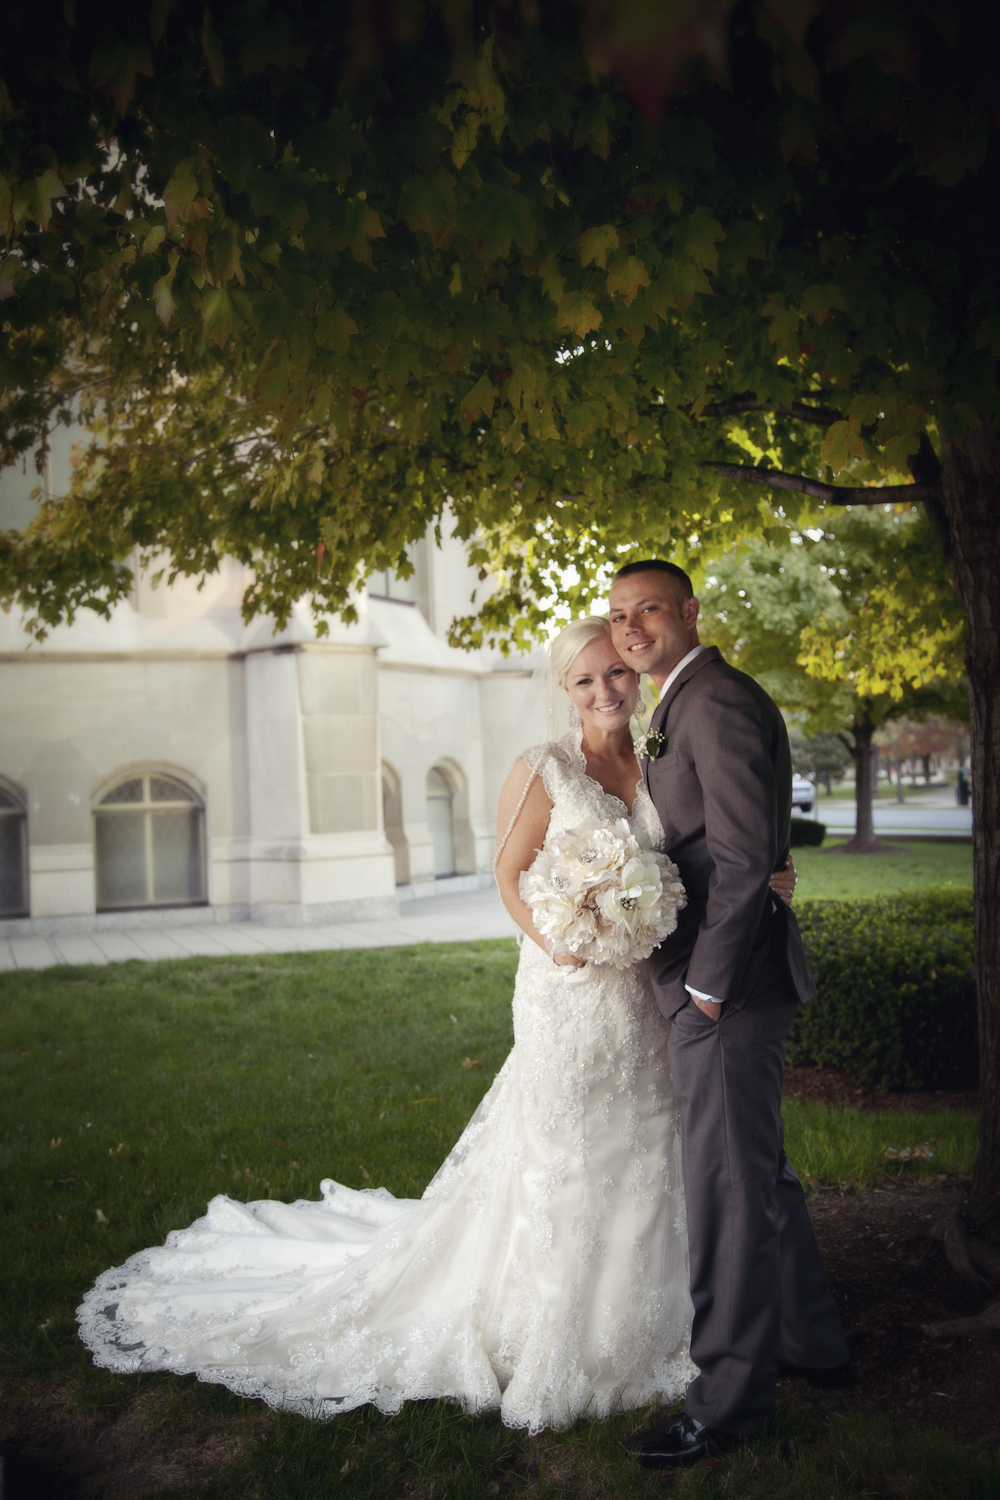 Indianapolis-Indiana-Scottish-Rite-Cathedral-Wedding-Photographer-Crowes-Eye-Photography-Bride-and-Groom-Shade-Tree.jpg